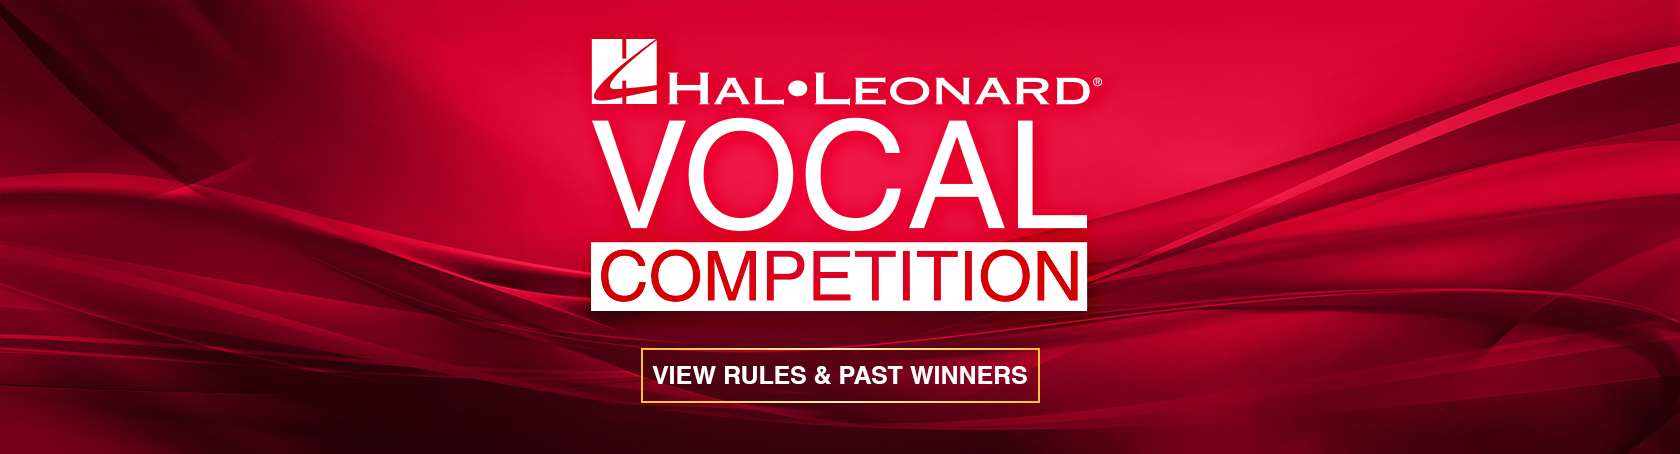 HL Vocal Competition Generic